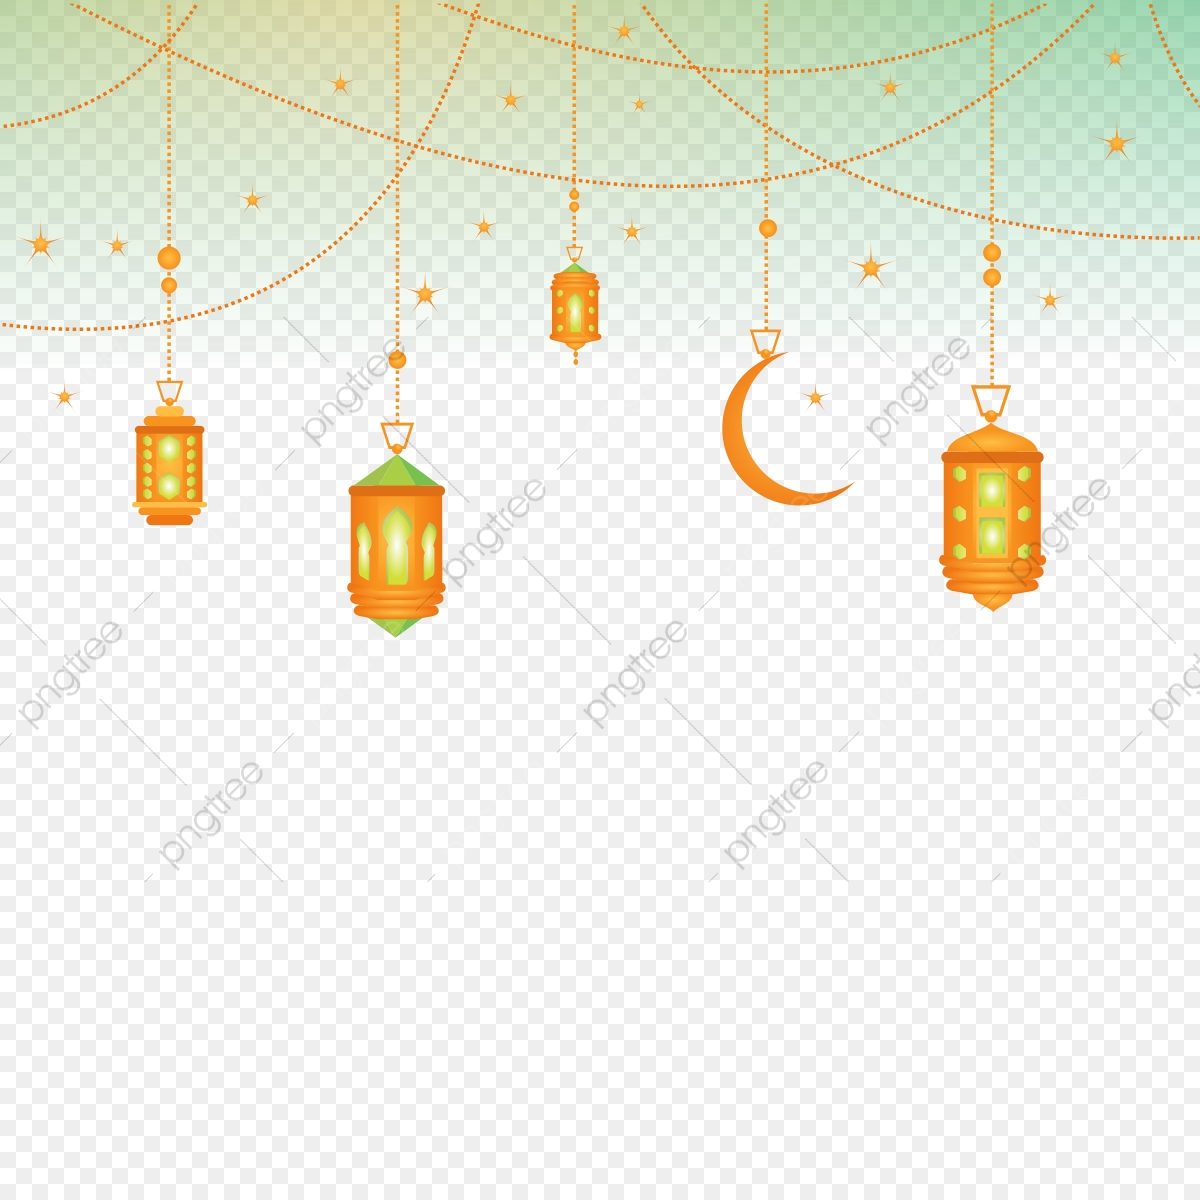 ramadan png images vector and psd files free download on pngtree https pngtree com freepng islamic background chandelier lamp eid al adha png free download 3558656 html